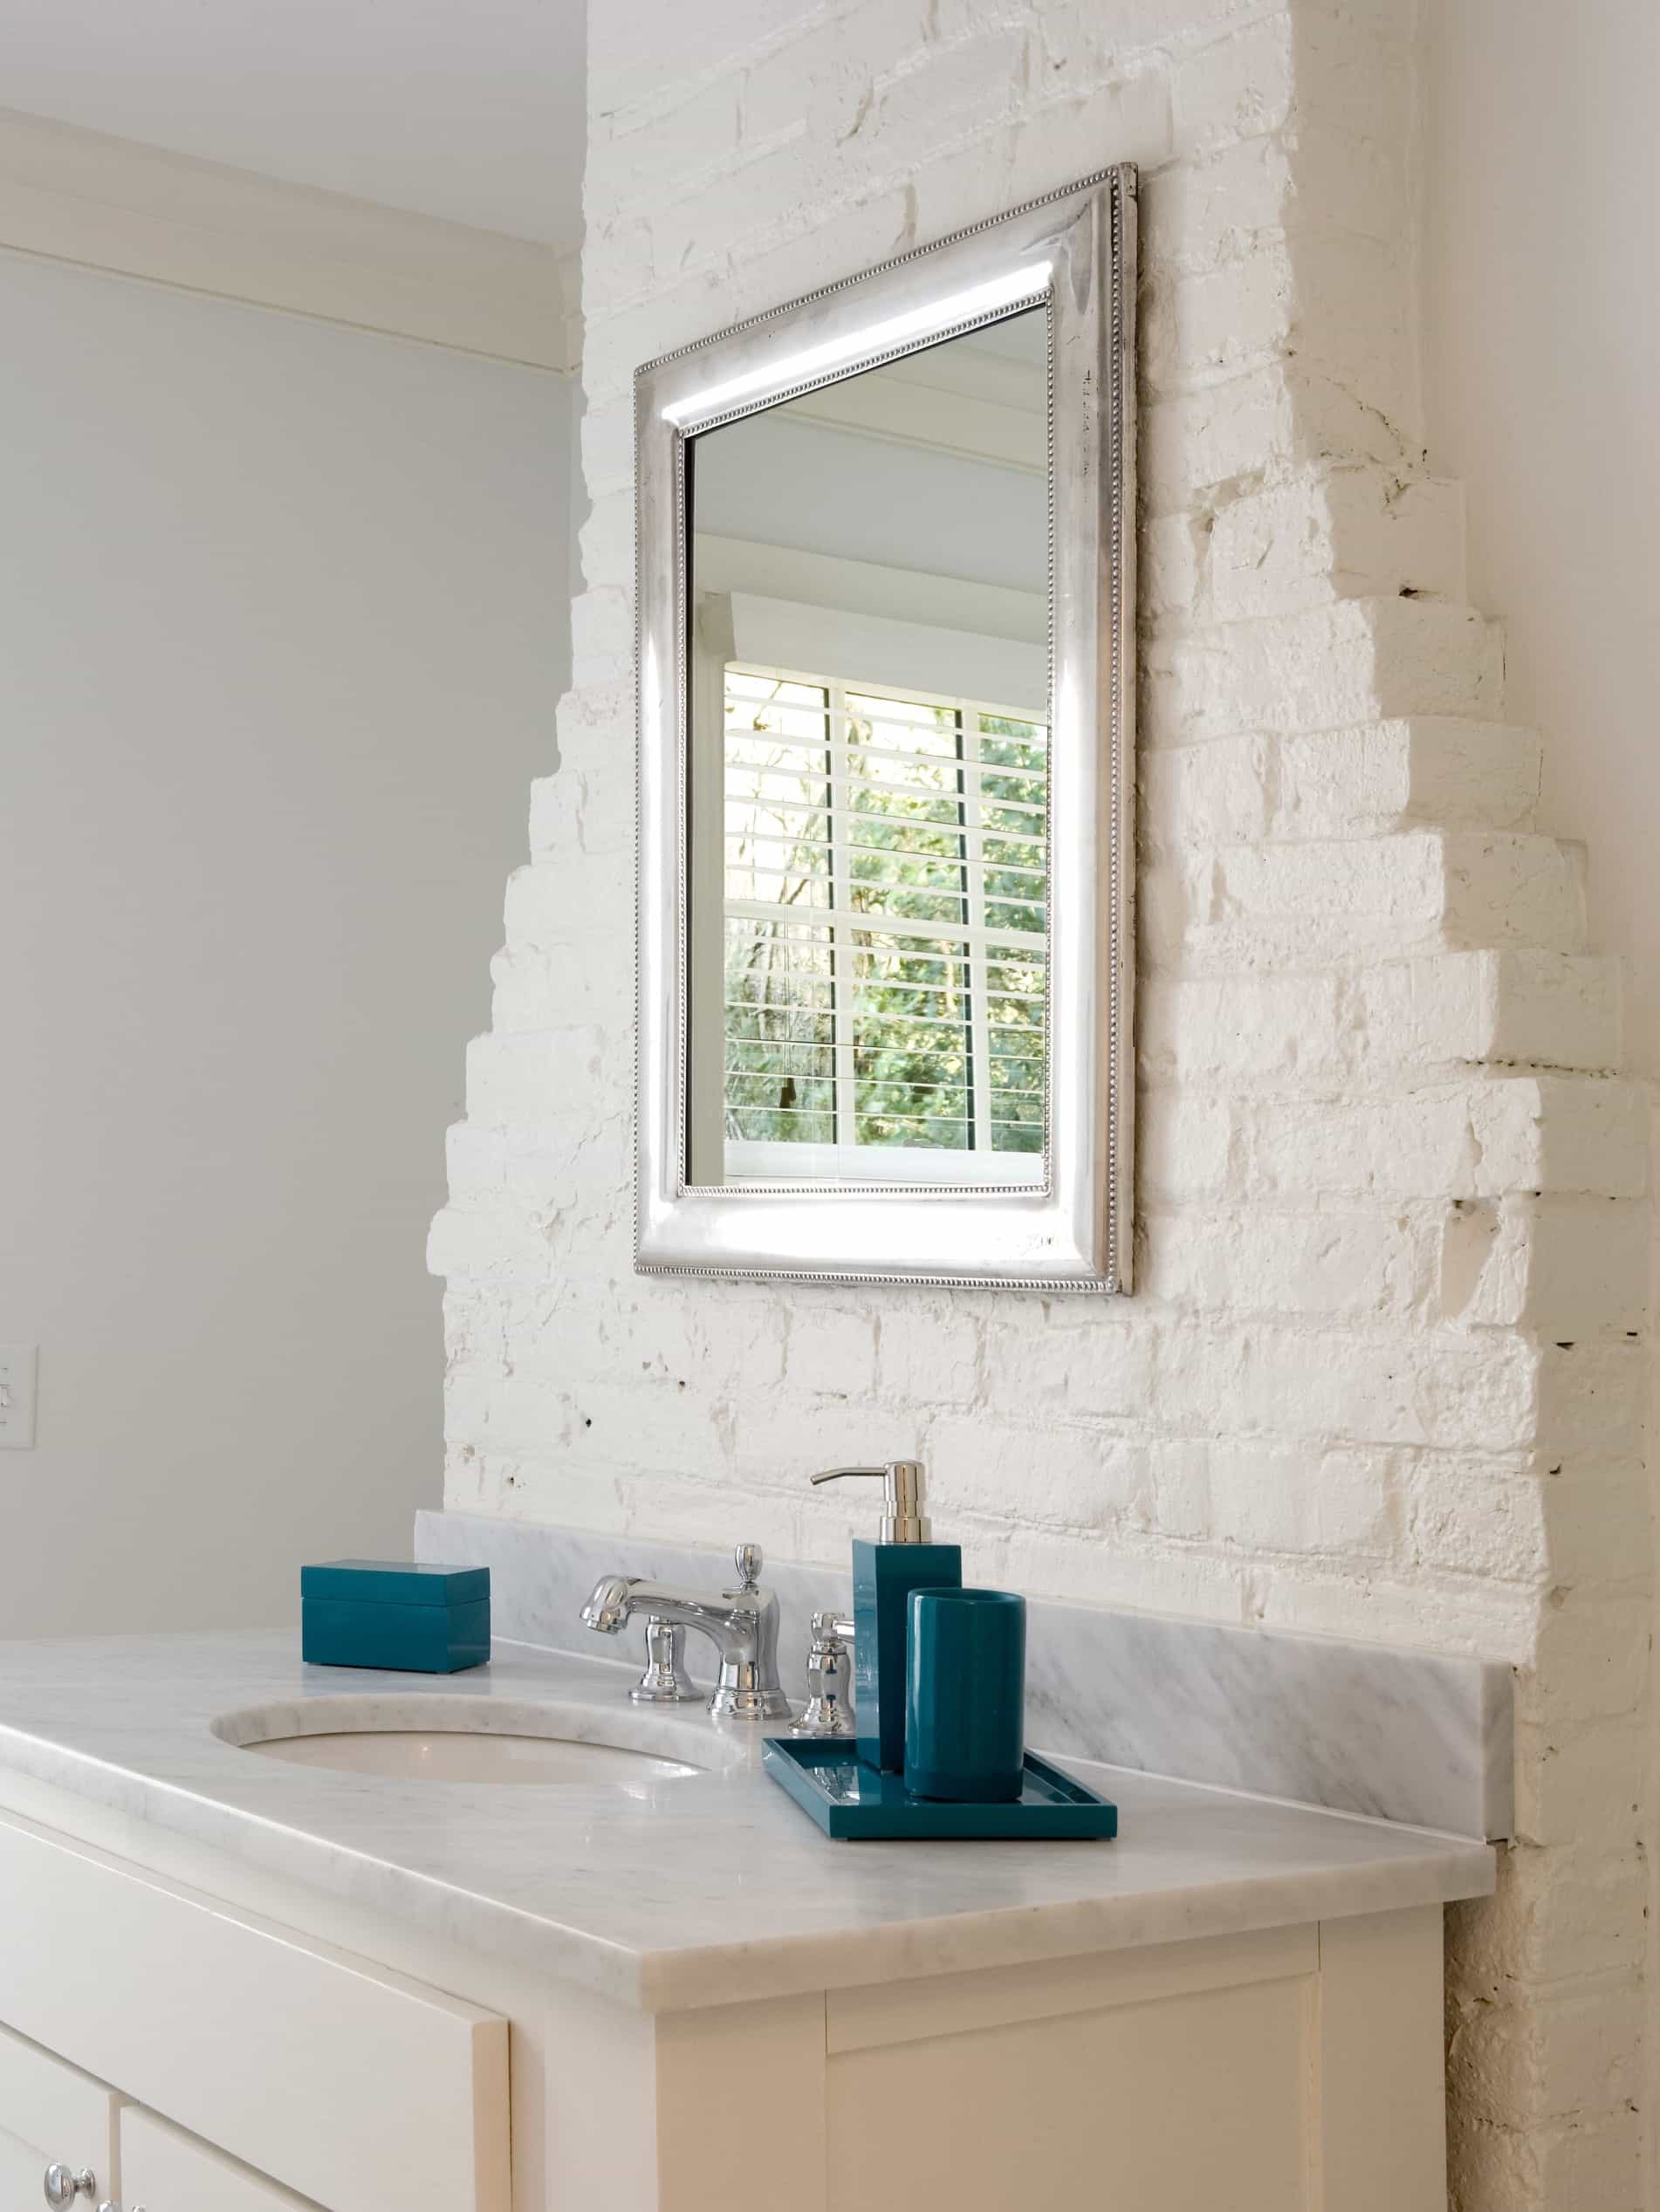 Featured Image of Cottage Bathroom Mirror With White Brick Wall With Vanity